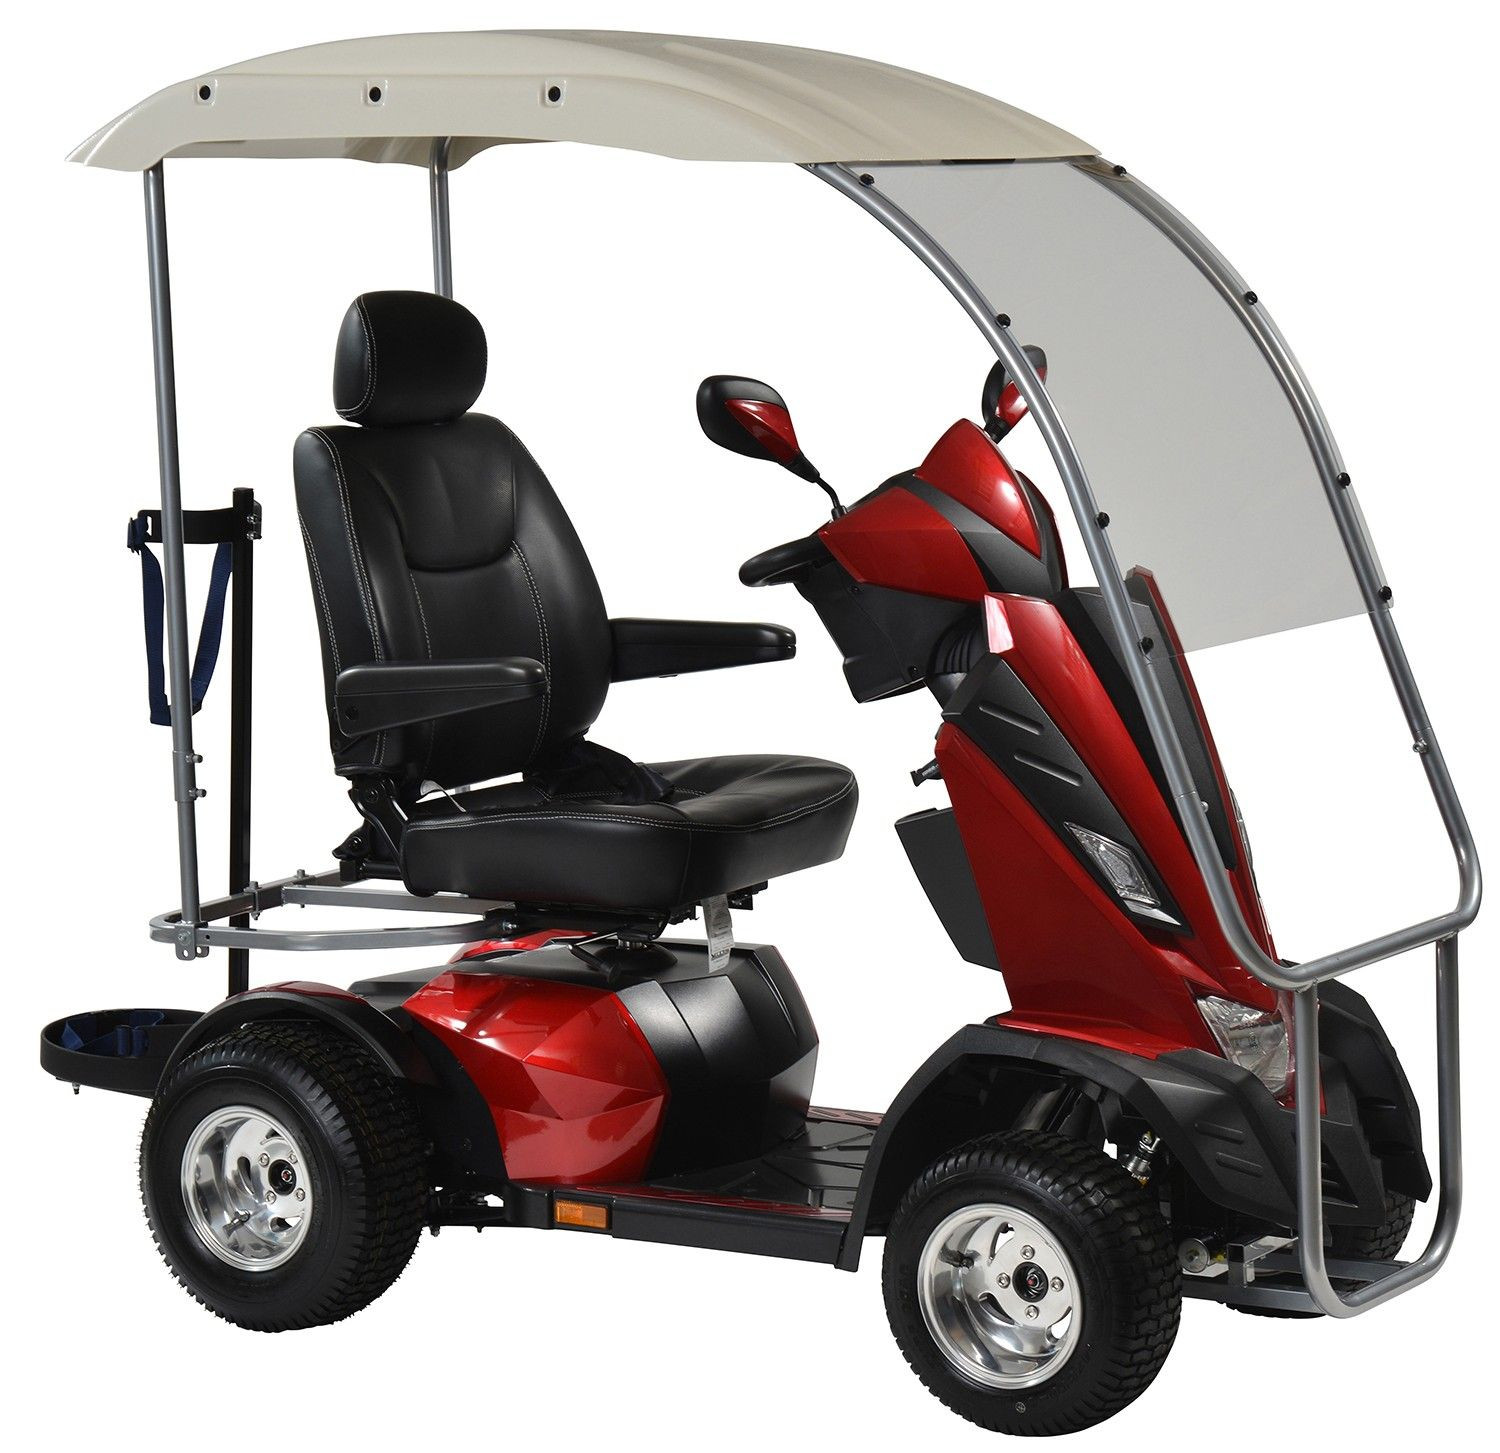 King Cobra PGV Executive 4-Wheel Mobility Scooter At Best Price